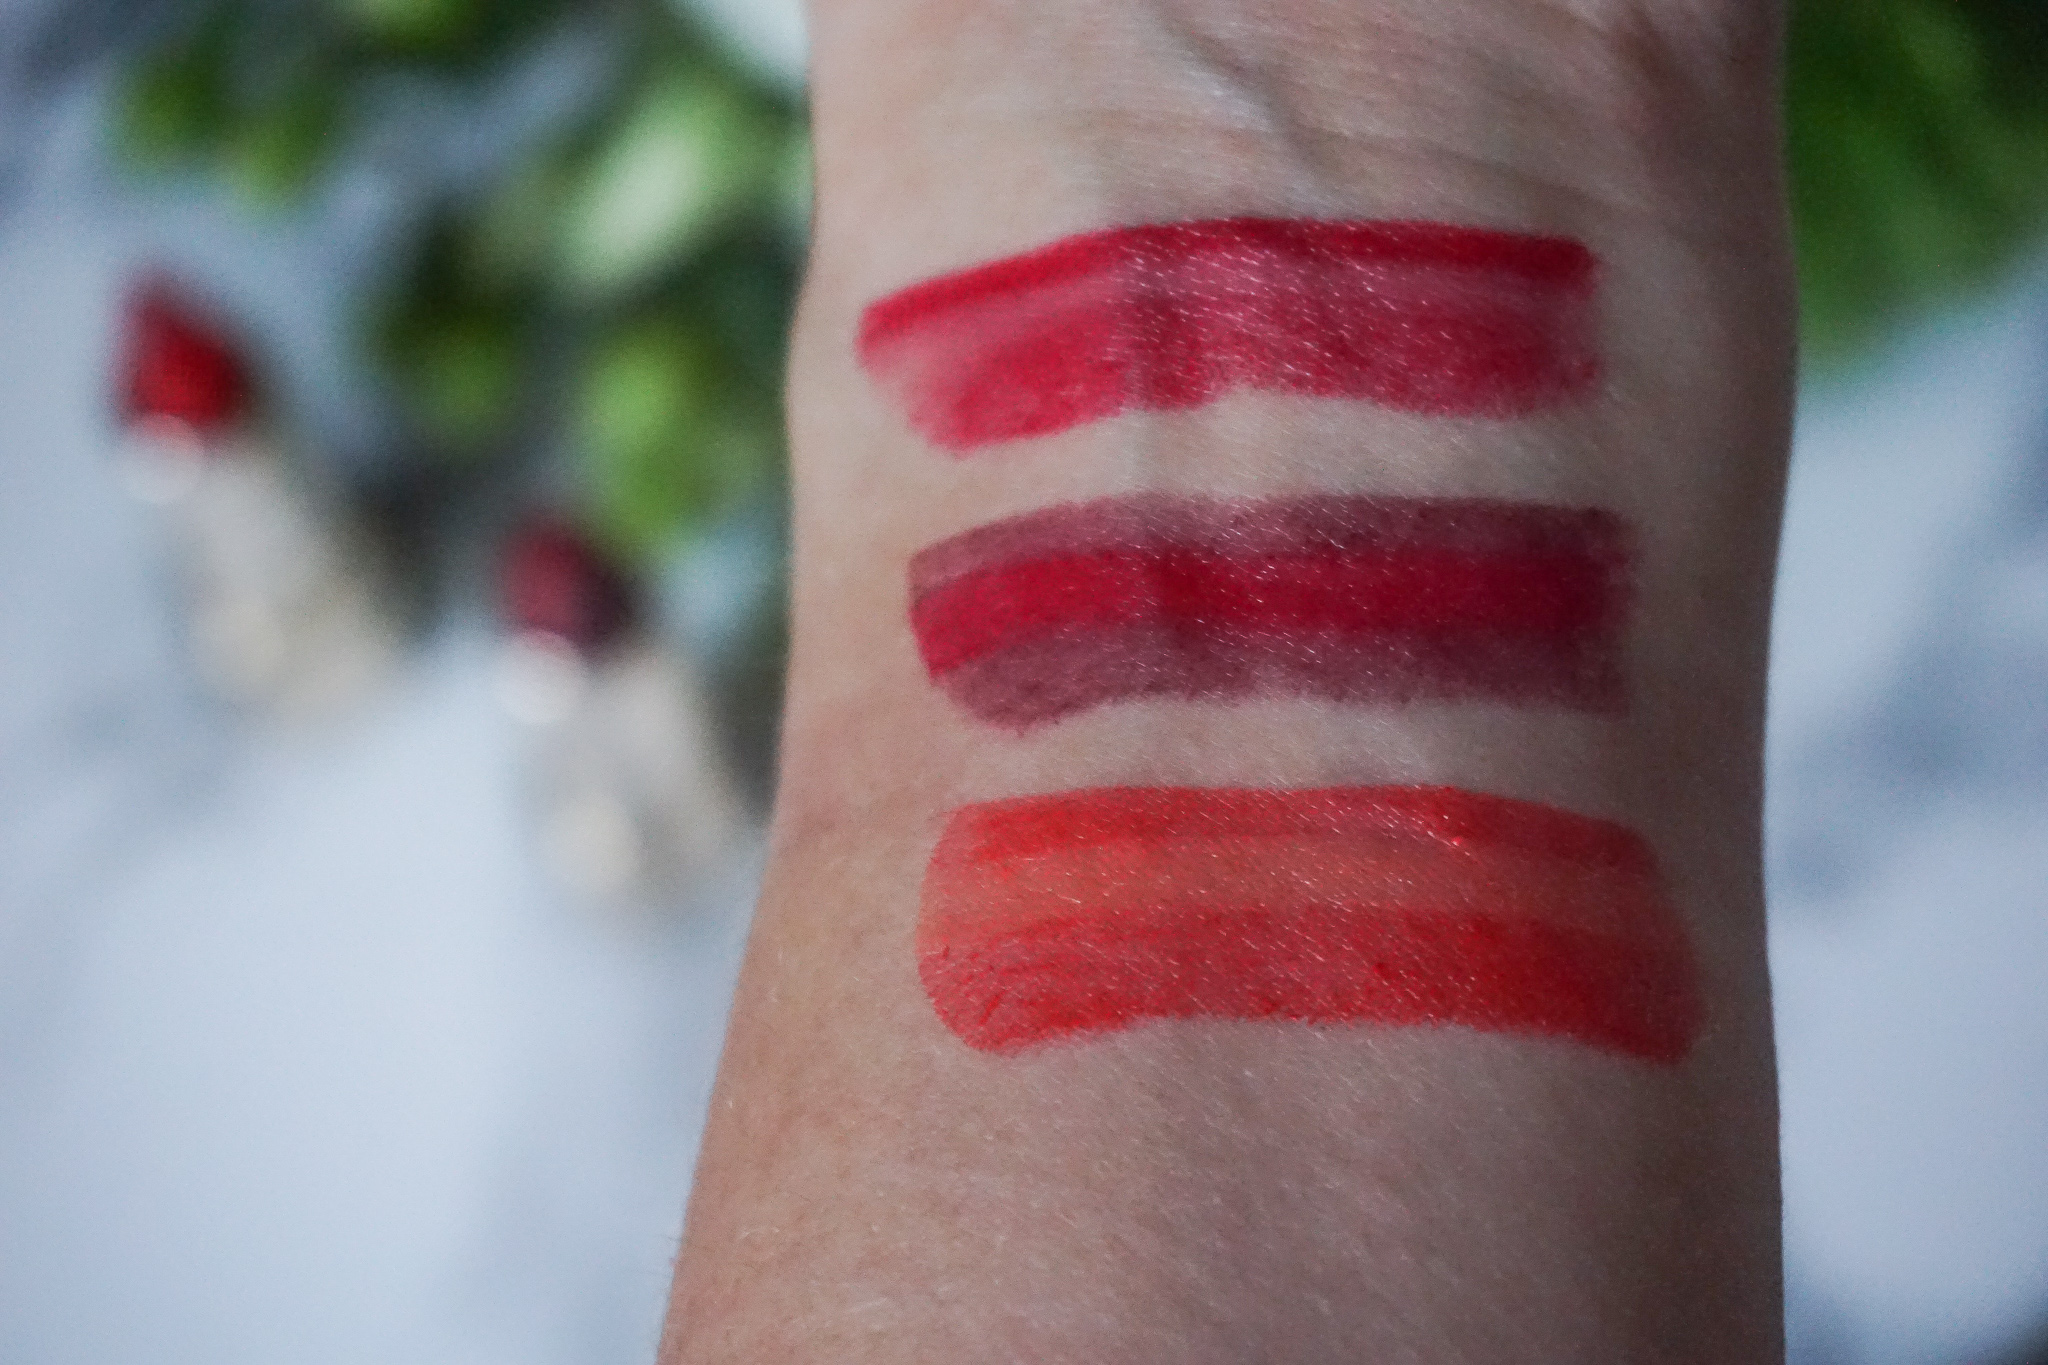 Clarins Jolie Rouge Gradation Lippenstifte Review